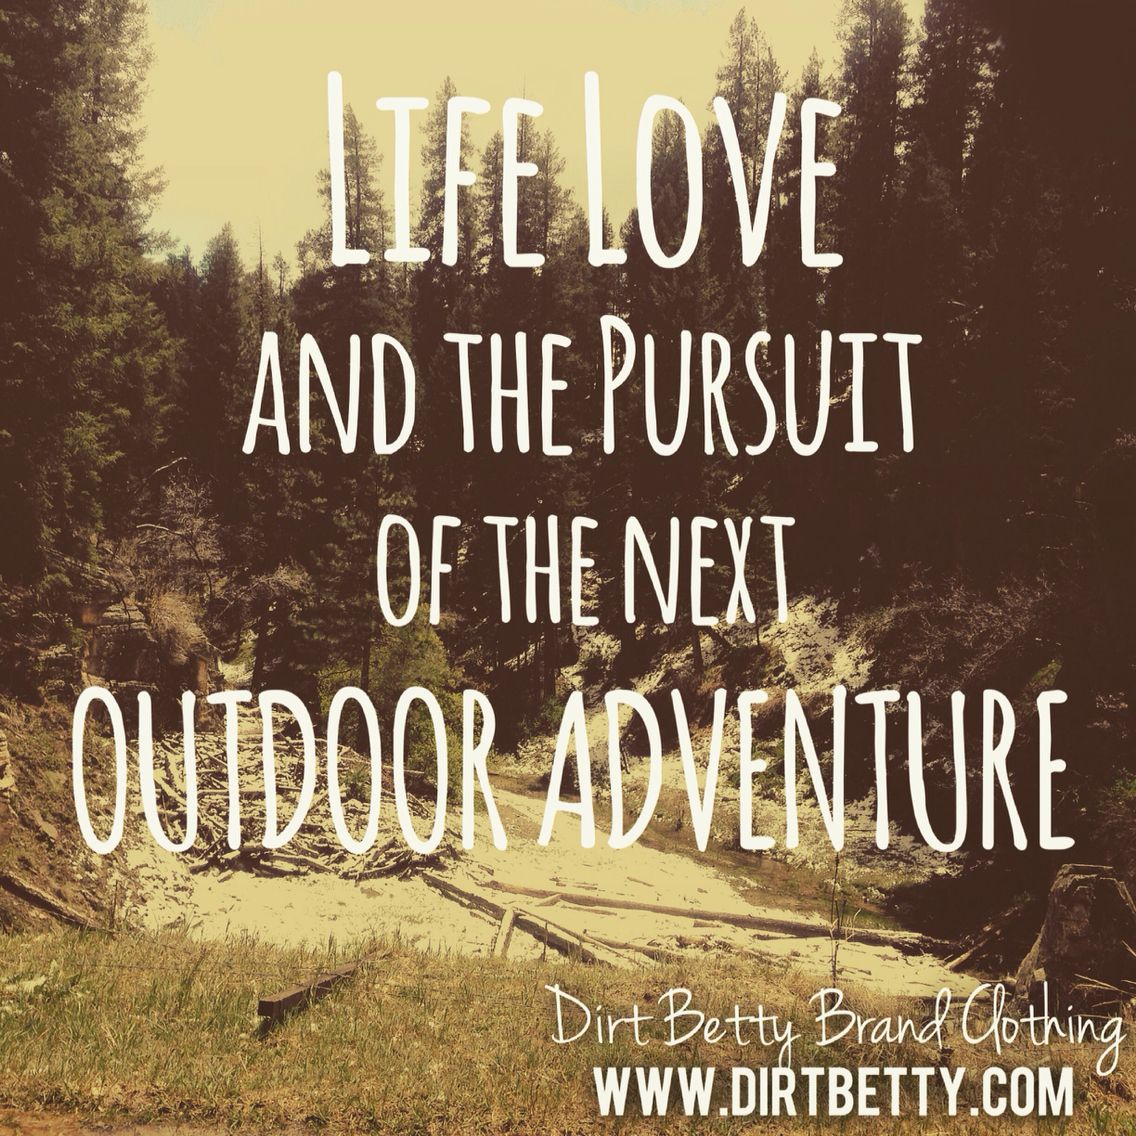 Jeep Quotes Life Love And The Pursuit Of The Next Outdoor Adventurequotes